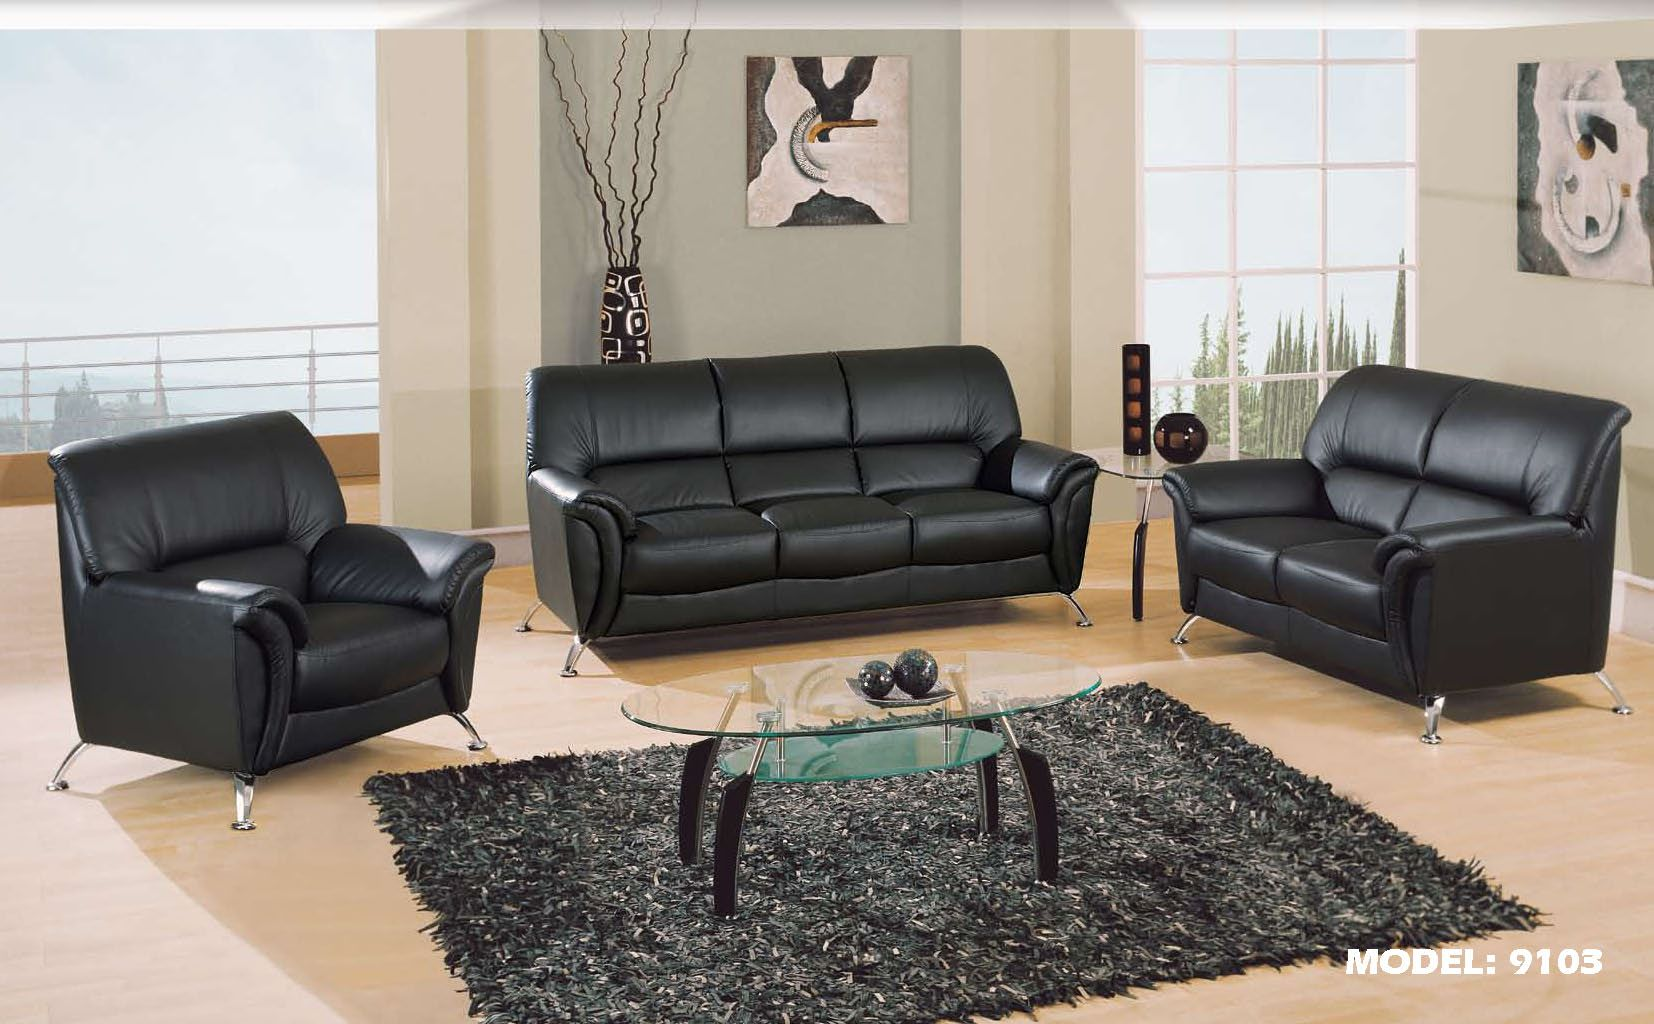 Images Of Sofa Set Designs Google Search Sofa Pinterest Sofa Set Designs And Sofa Set